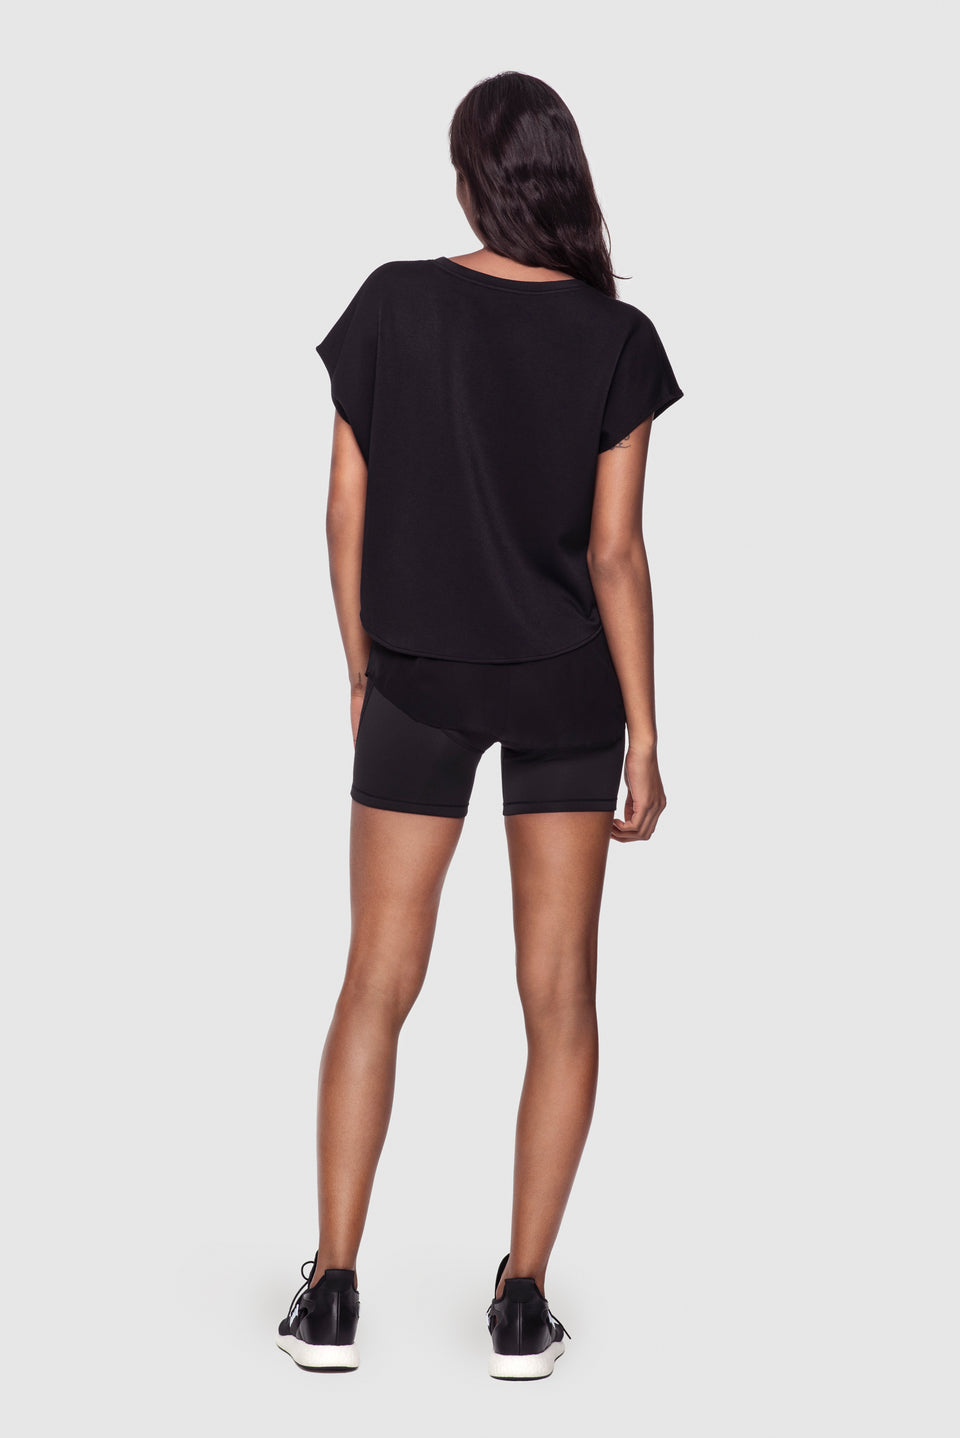 Athleisure Double-Layer Top Black - Kiki de Montparnasse